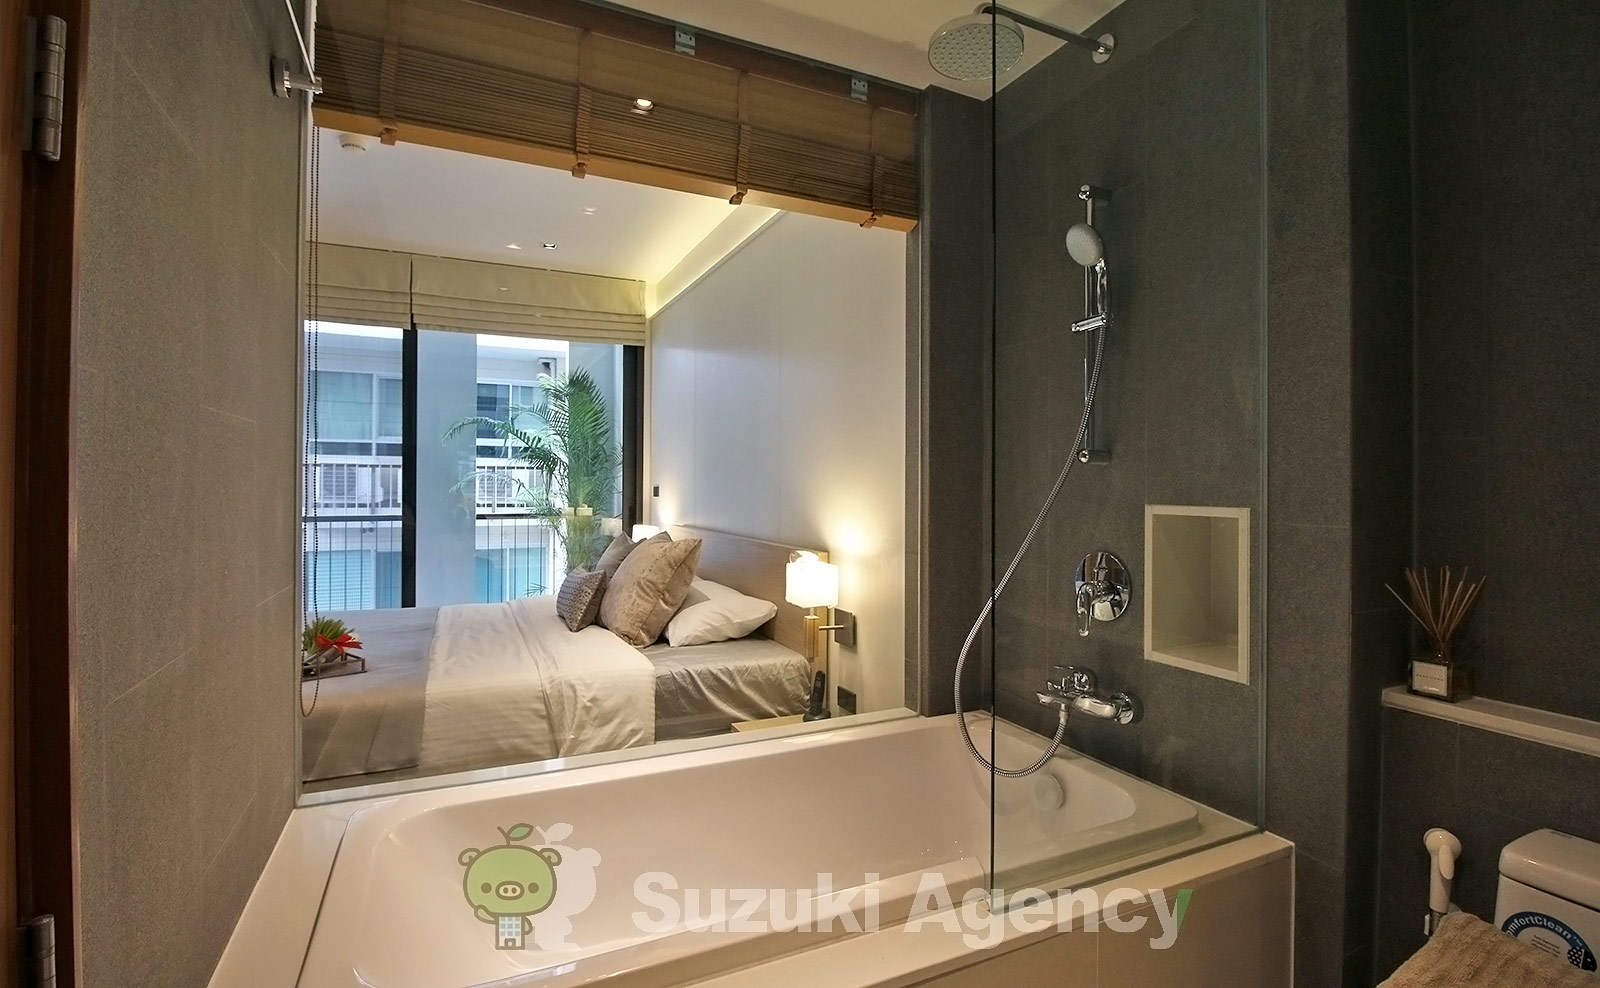 Jitimont Residence:1Bed Room Photos No.9